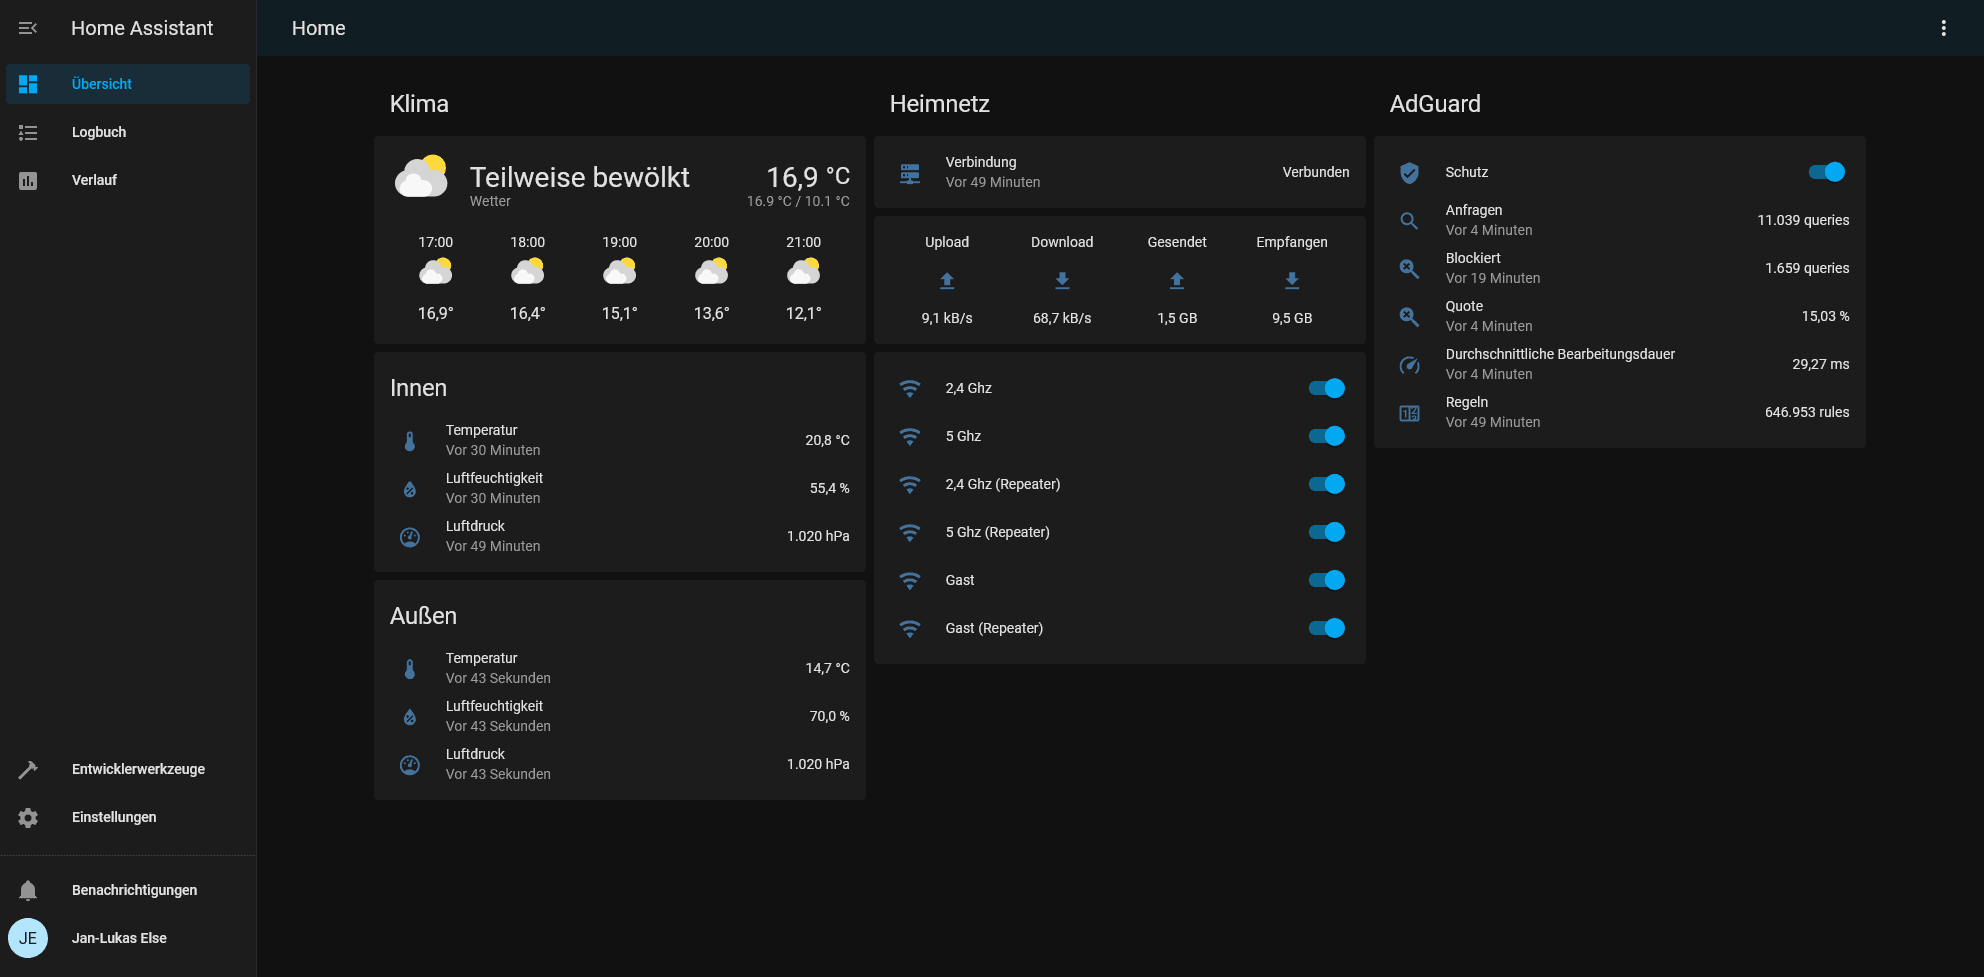 My Home Assistant dashboard